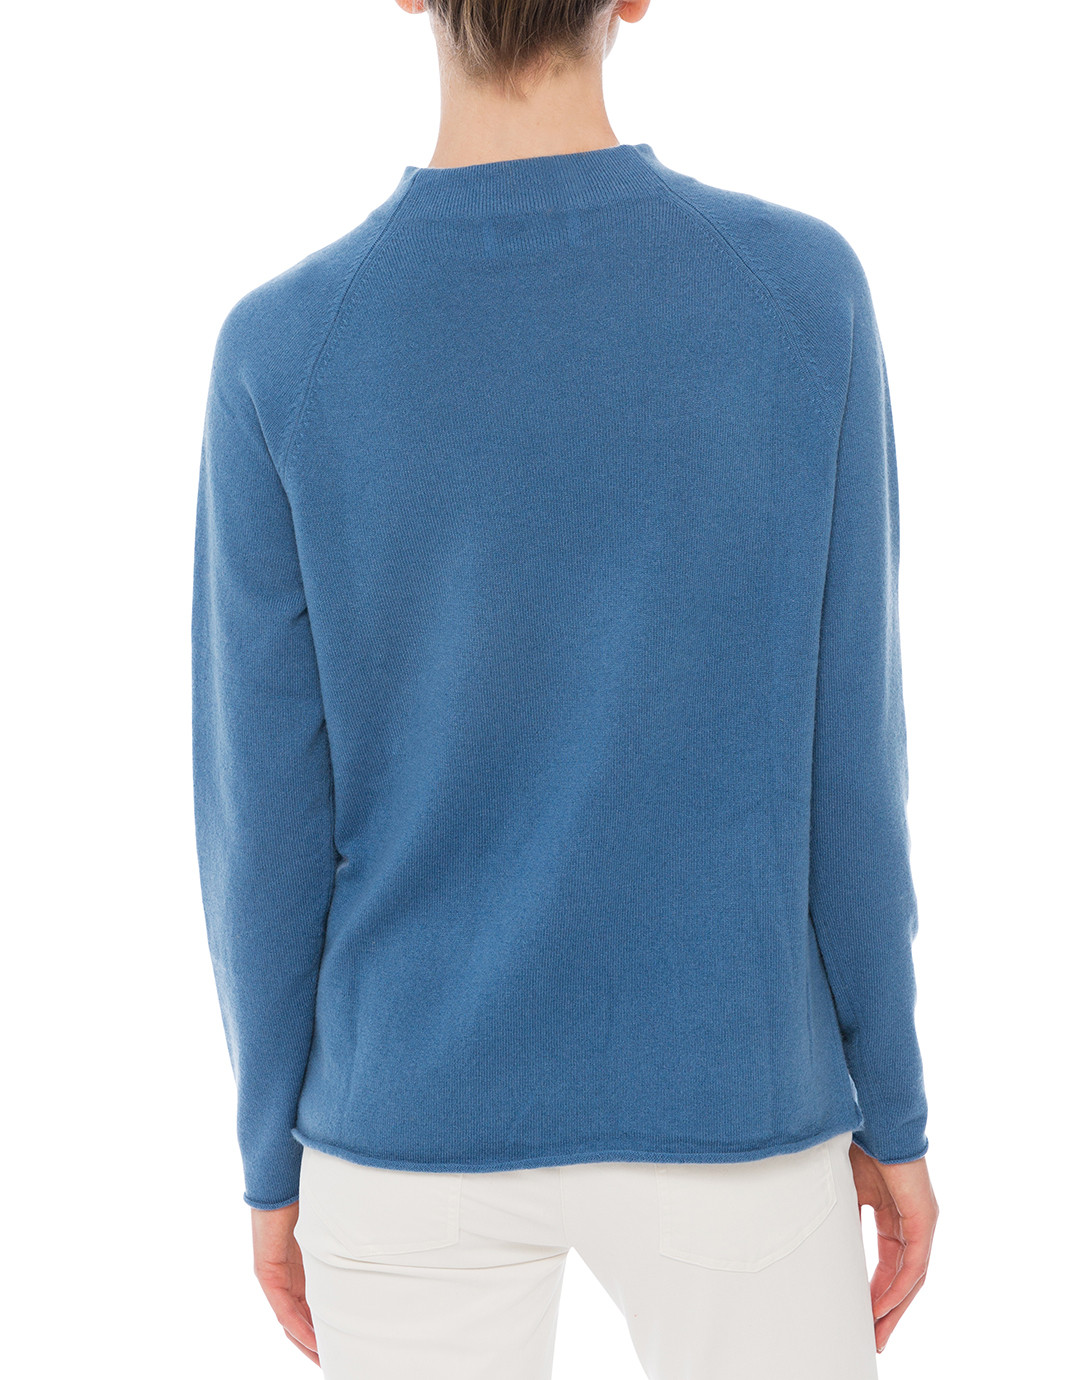 Sea Blue Pullover Sweater with Front Pockets | Allude | Halsbrook